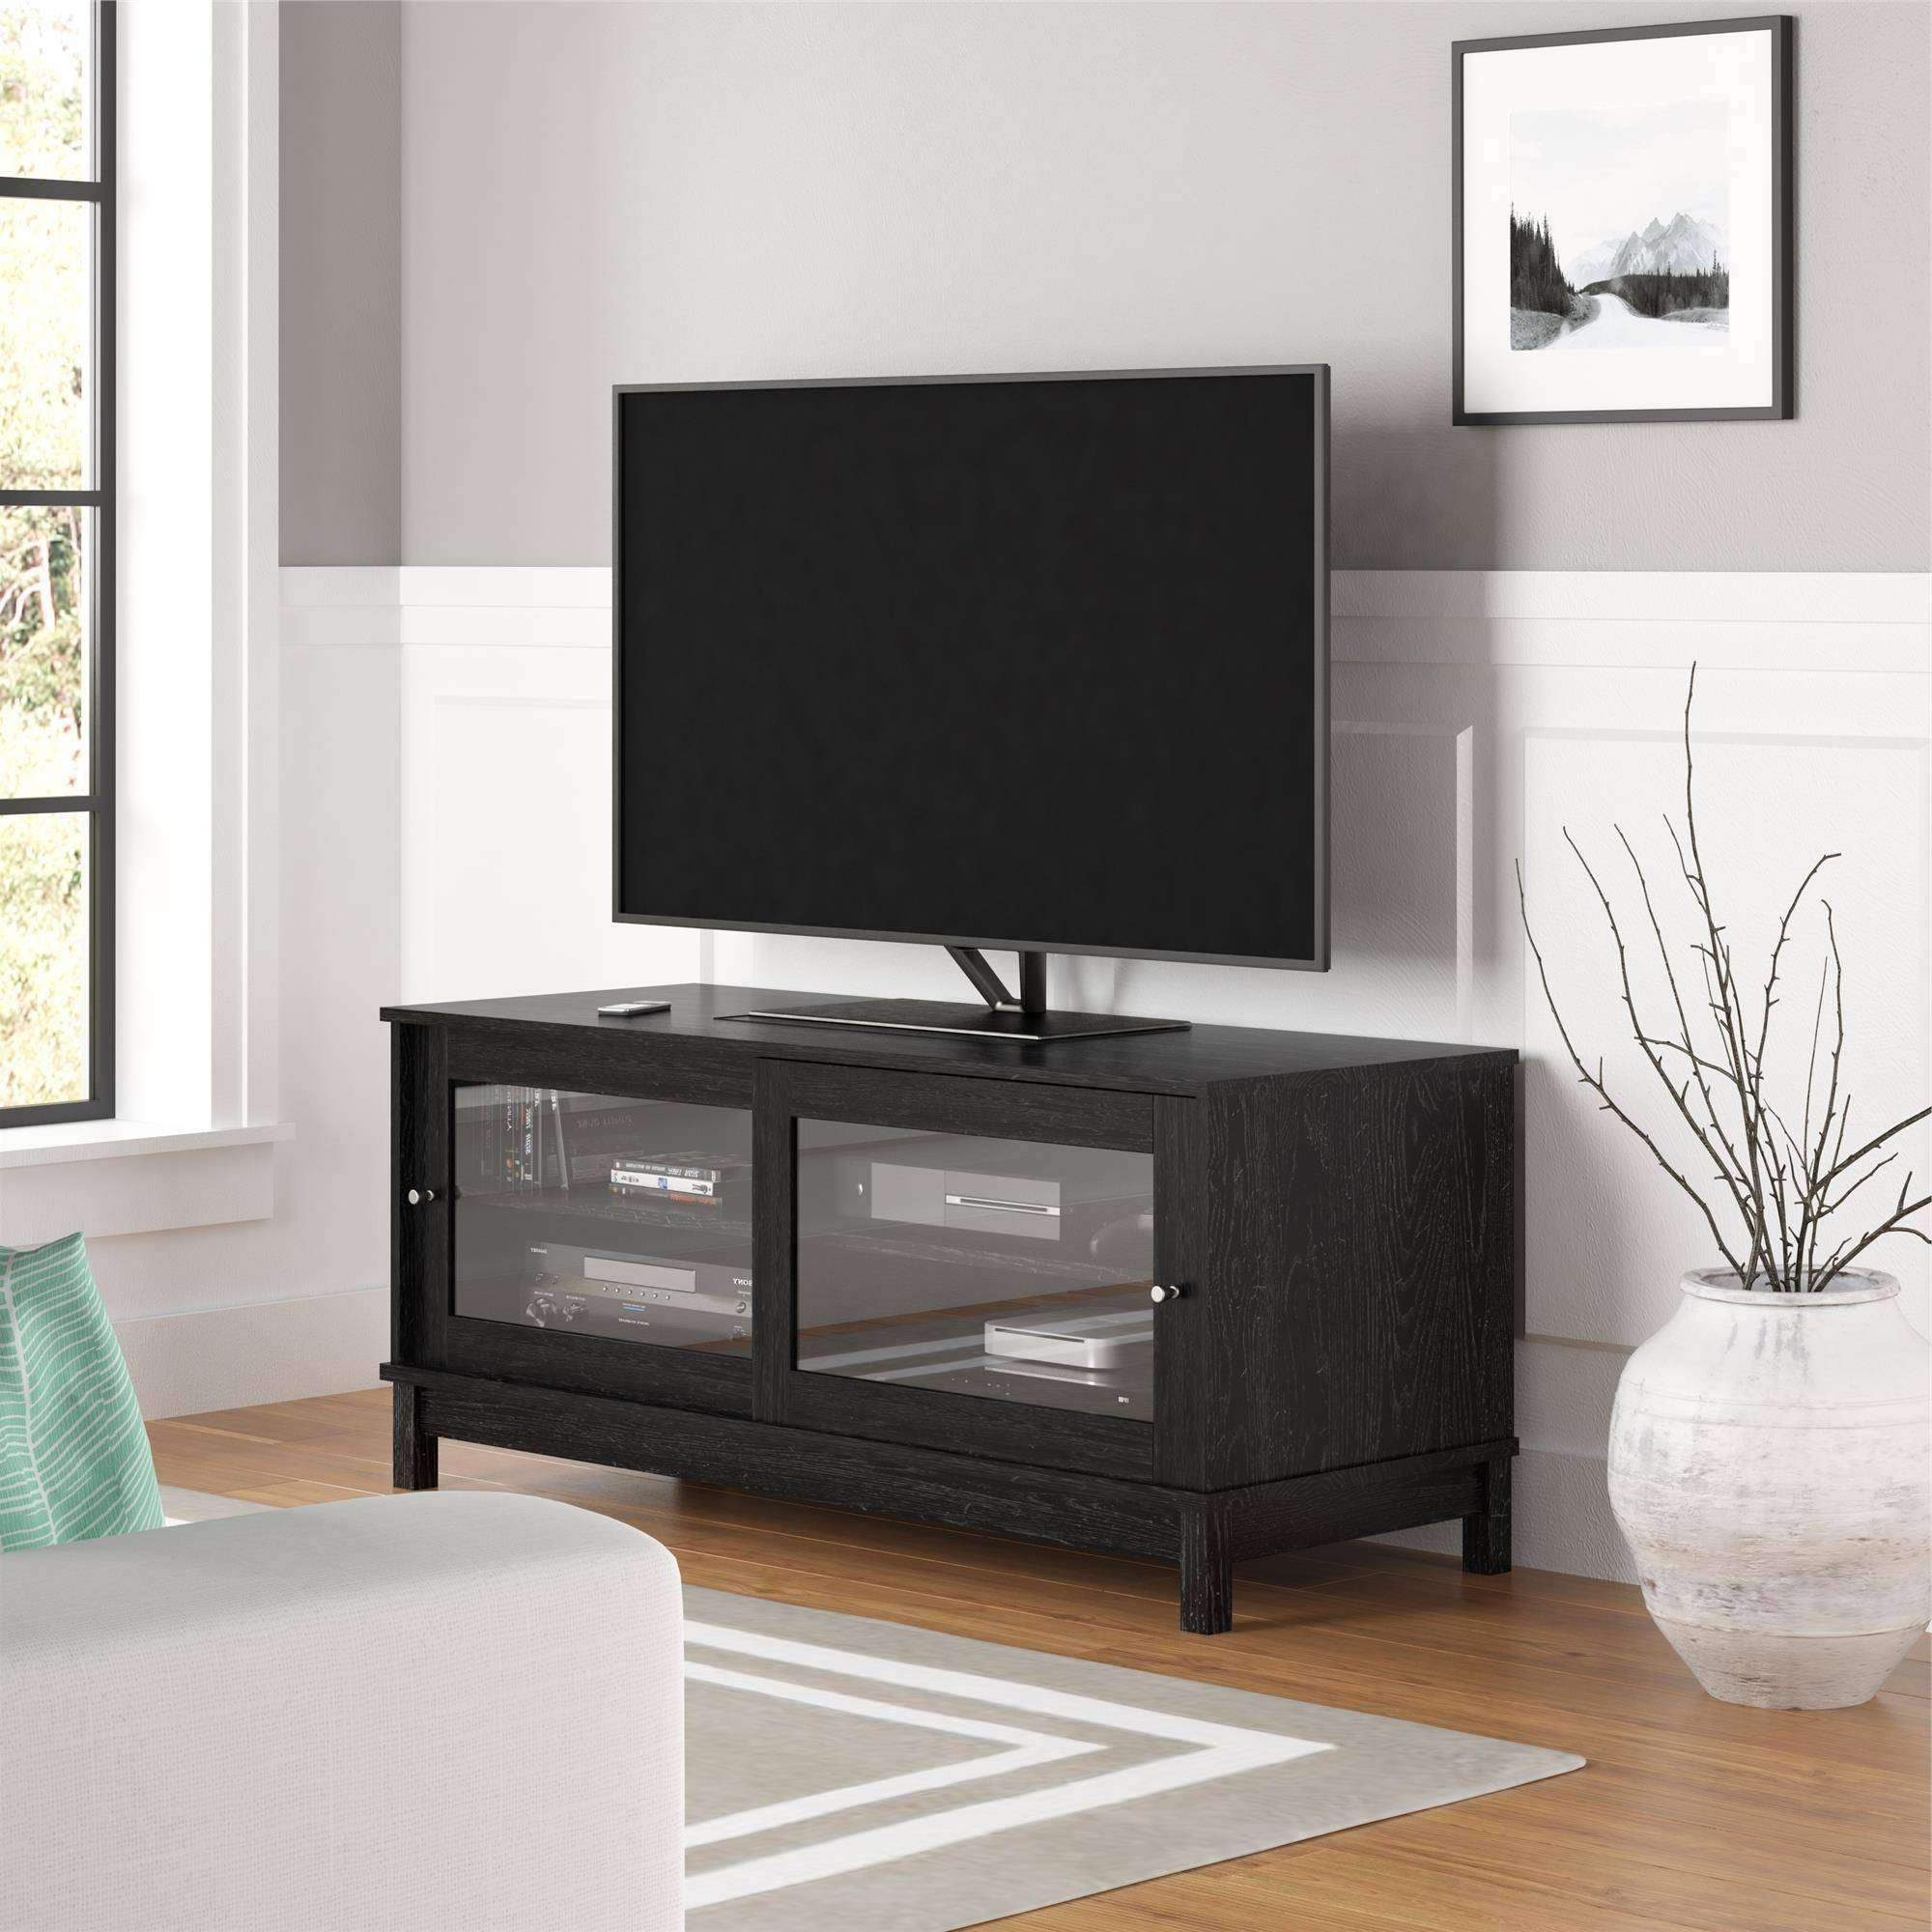 "Mainstays 55"" Tv Stand With Sliding Glass Doors, Dark Gray Oak Pertaining To Black Tv Stands With Glass Doors (View 10 of 15)"